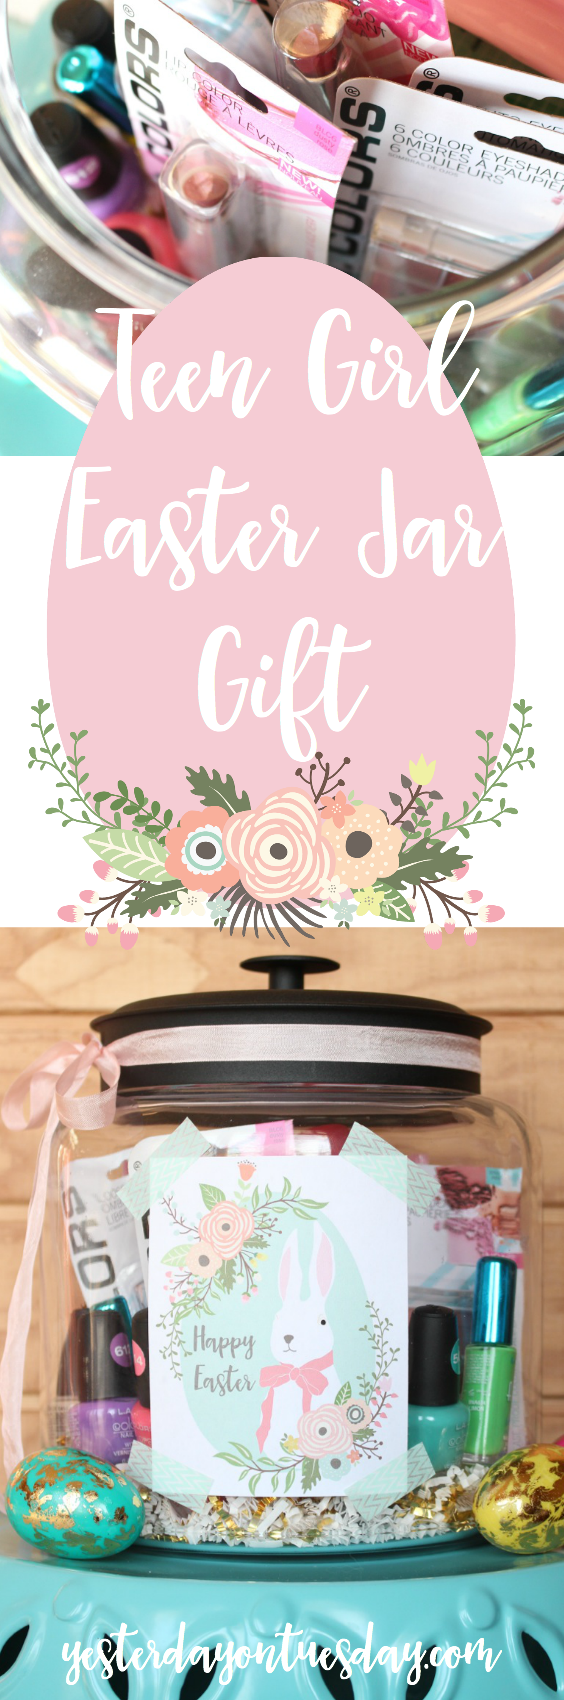 Teen Girl Easter Jar Gift: Pretty Easter present idea for teen girls including Easter printables.